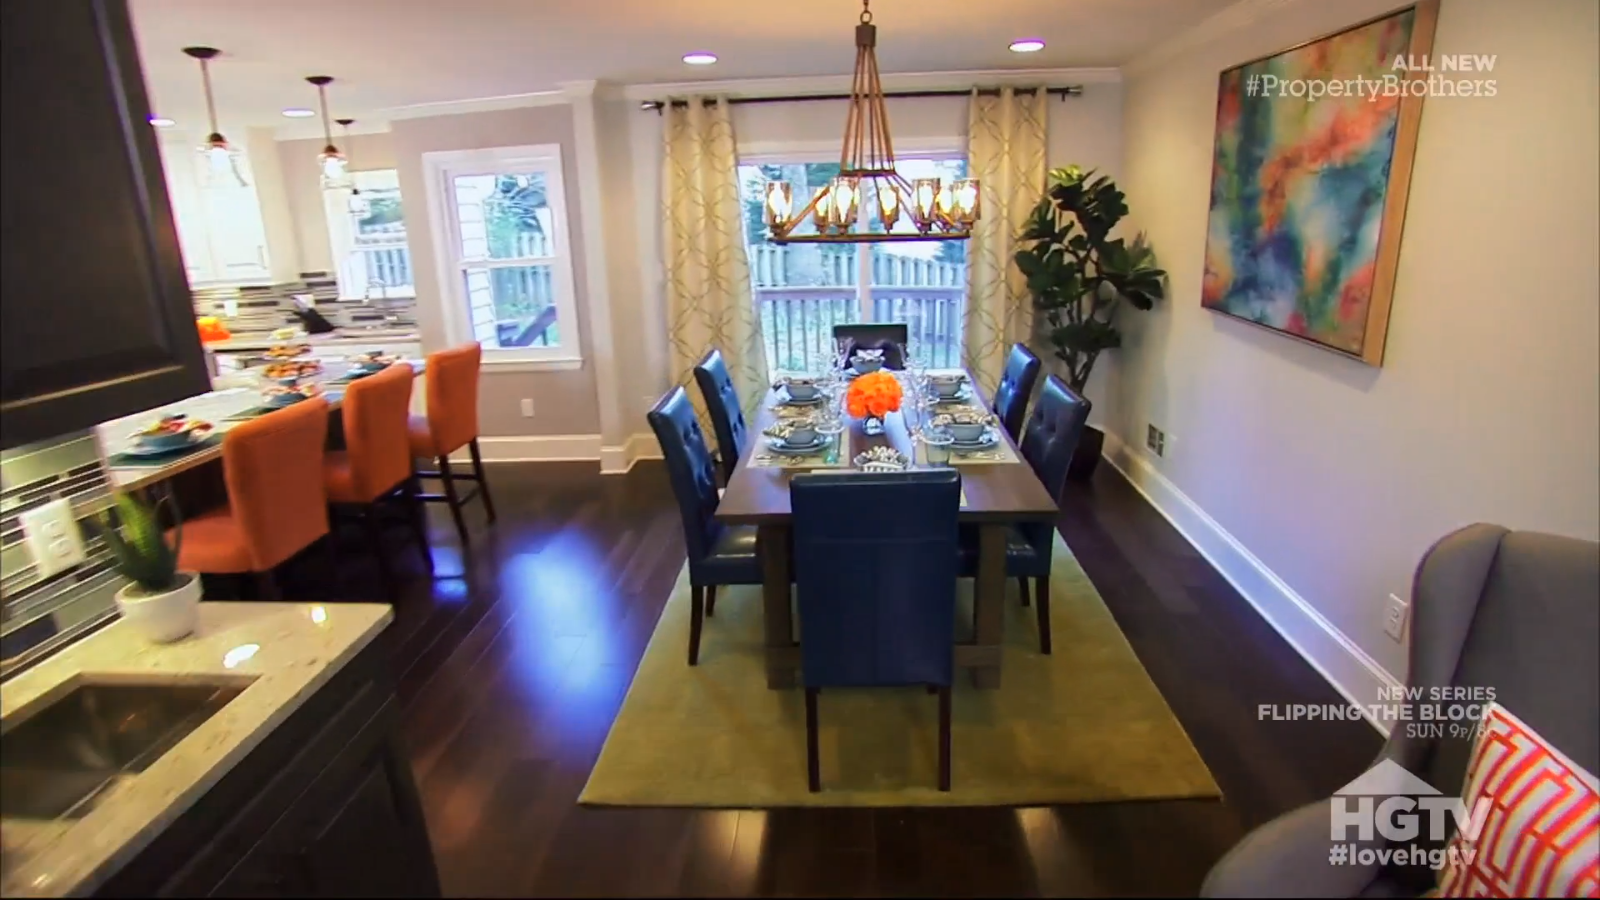 Property Brothers Aven Phillip LOVE This Dining Room Not So Much The Curtains And Definitely Light But Large Table Blue Chairs